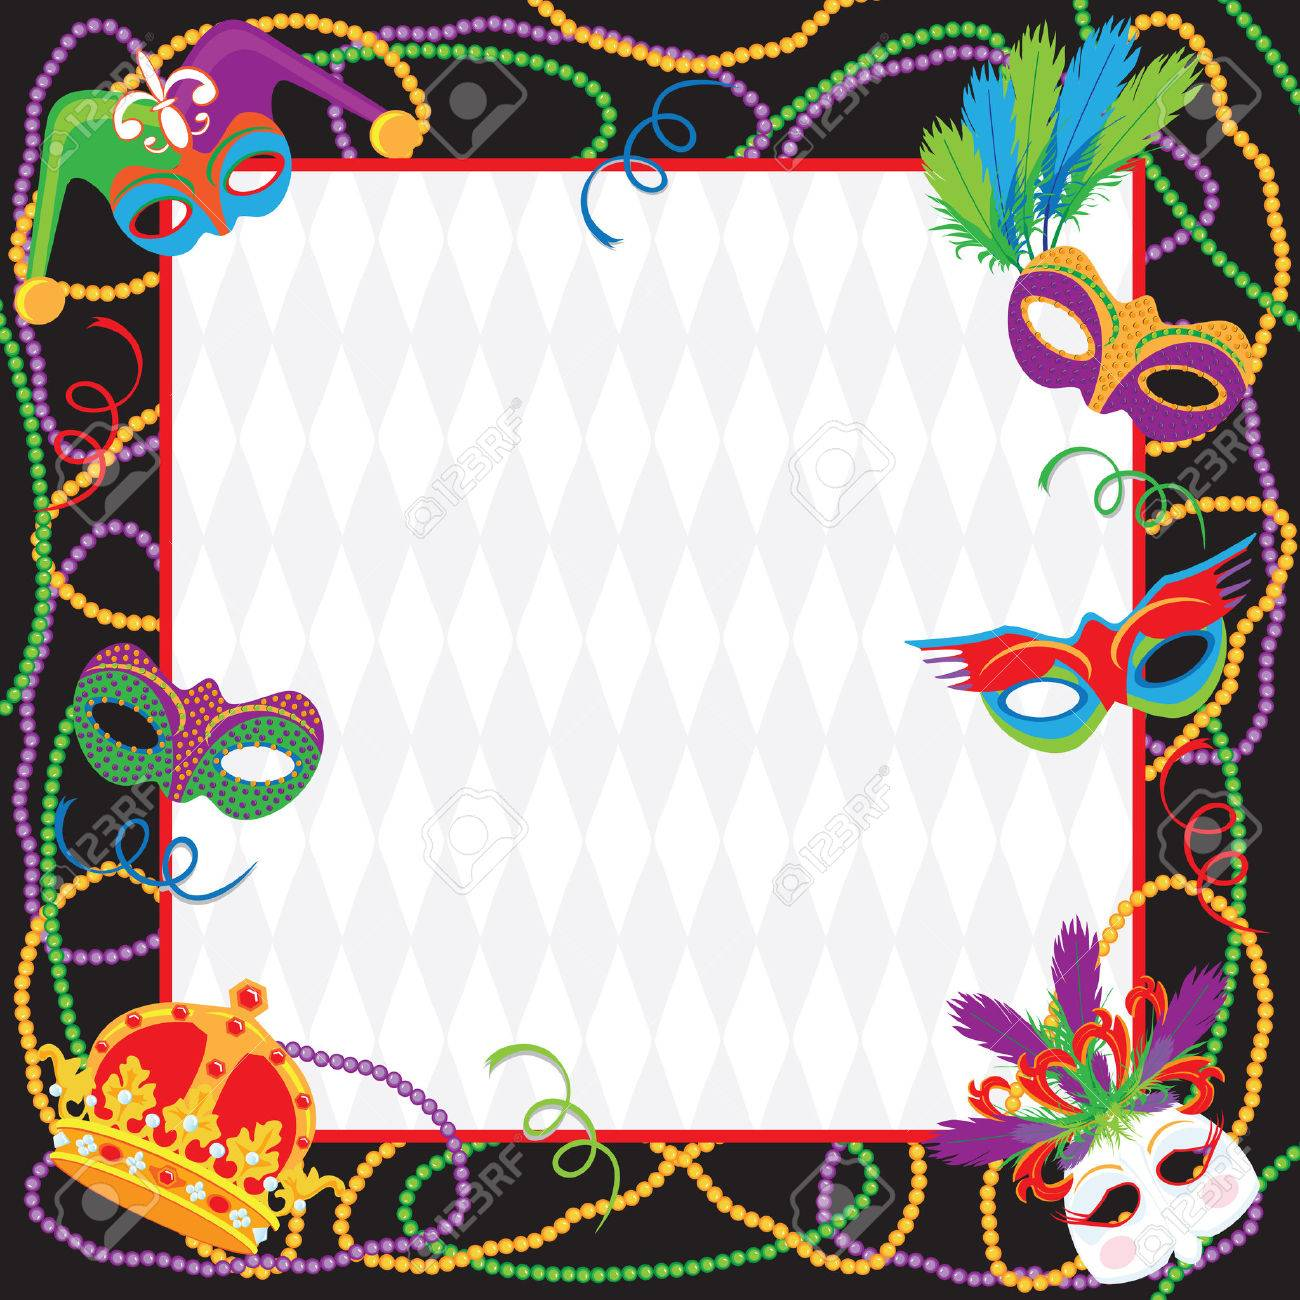 mardi gras party invitation royalty free cliparts, vectors, and, Party invitations